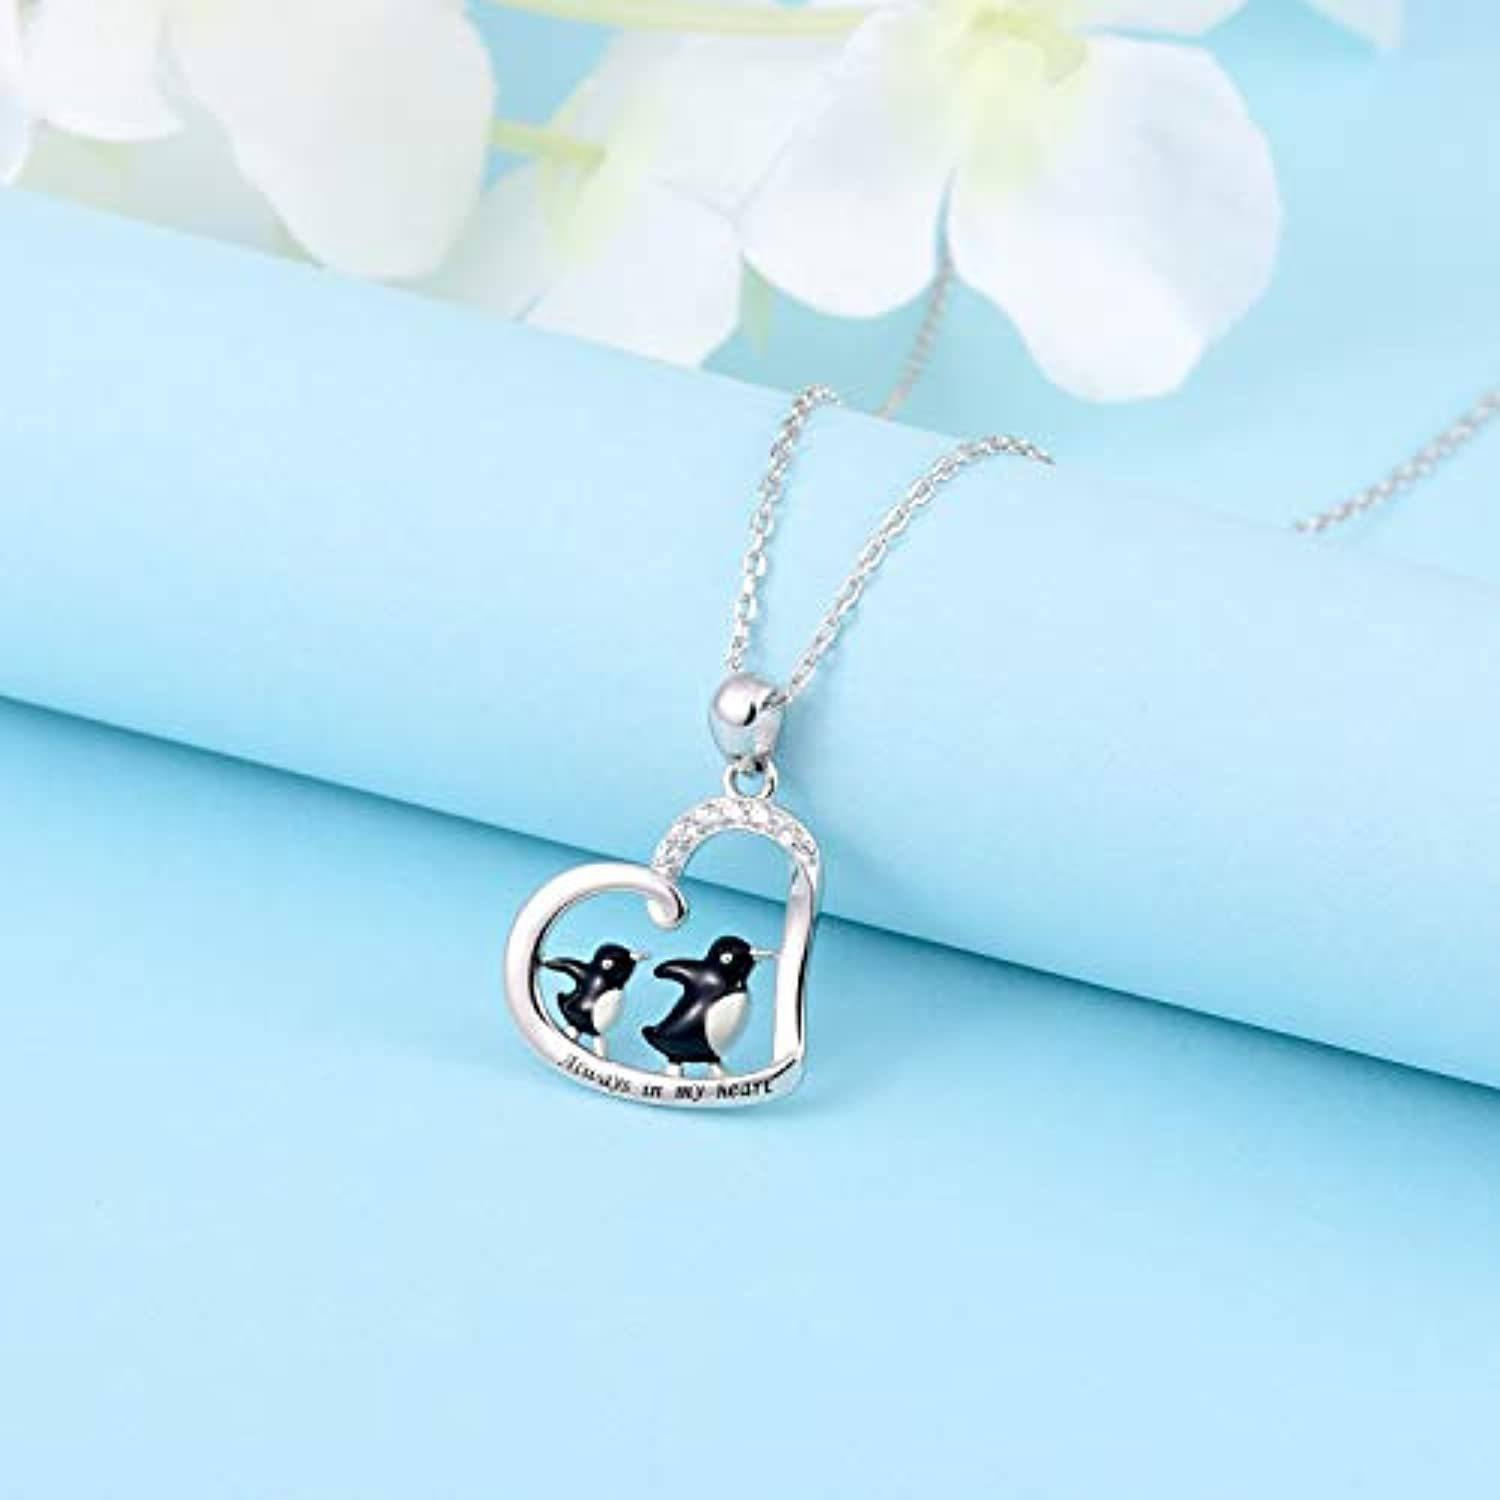 Penguin Couple Sterling Silver Pendant with Chain